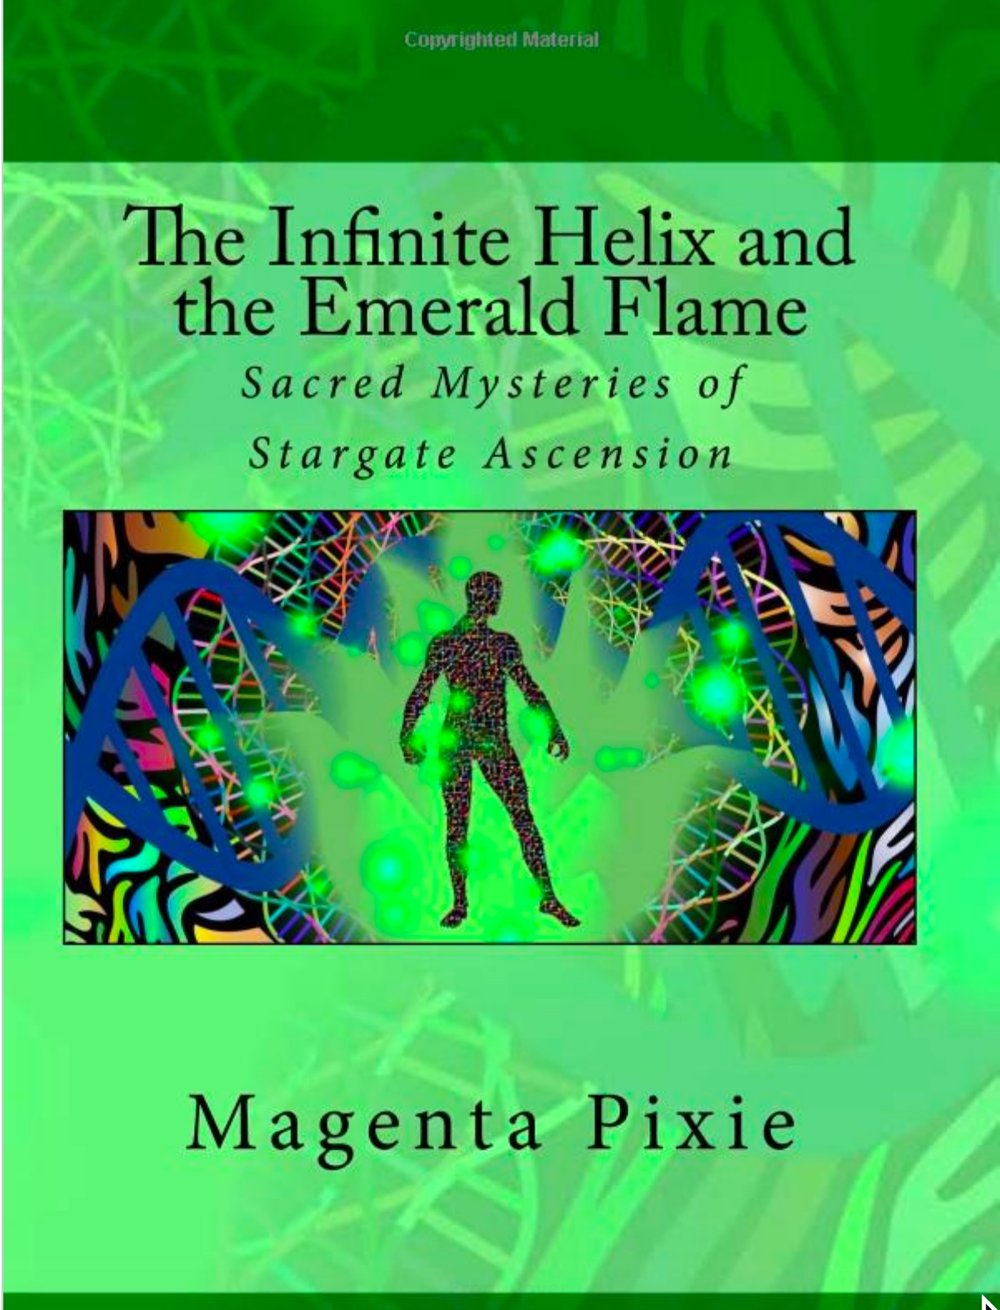 The Infinite Helix and the Emerald Flame by Magenta Pixie and the White Winged Collective Consciousness of Nine